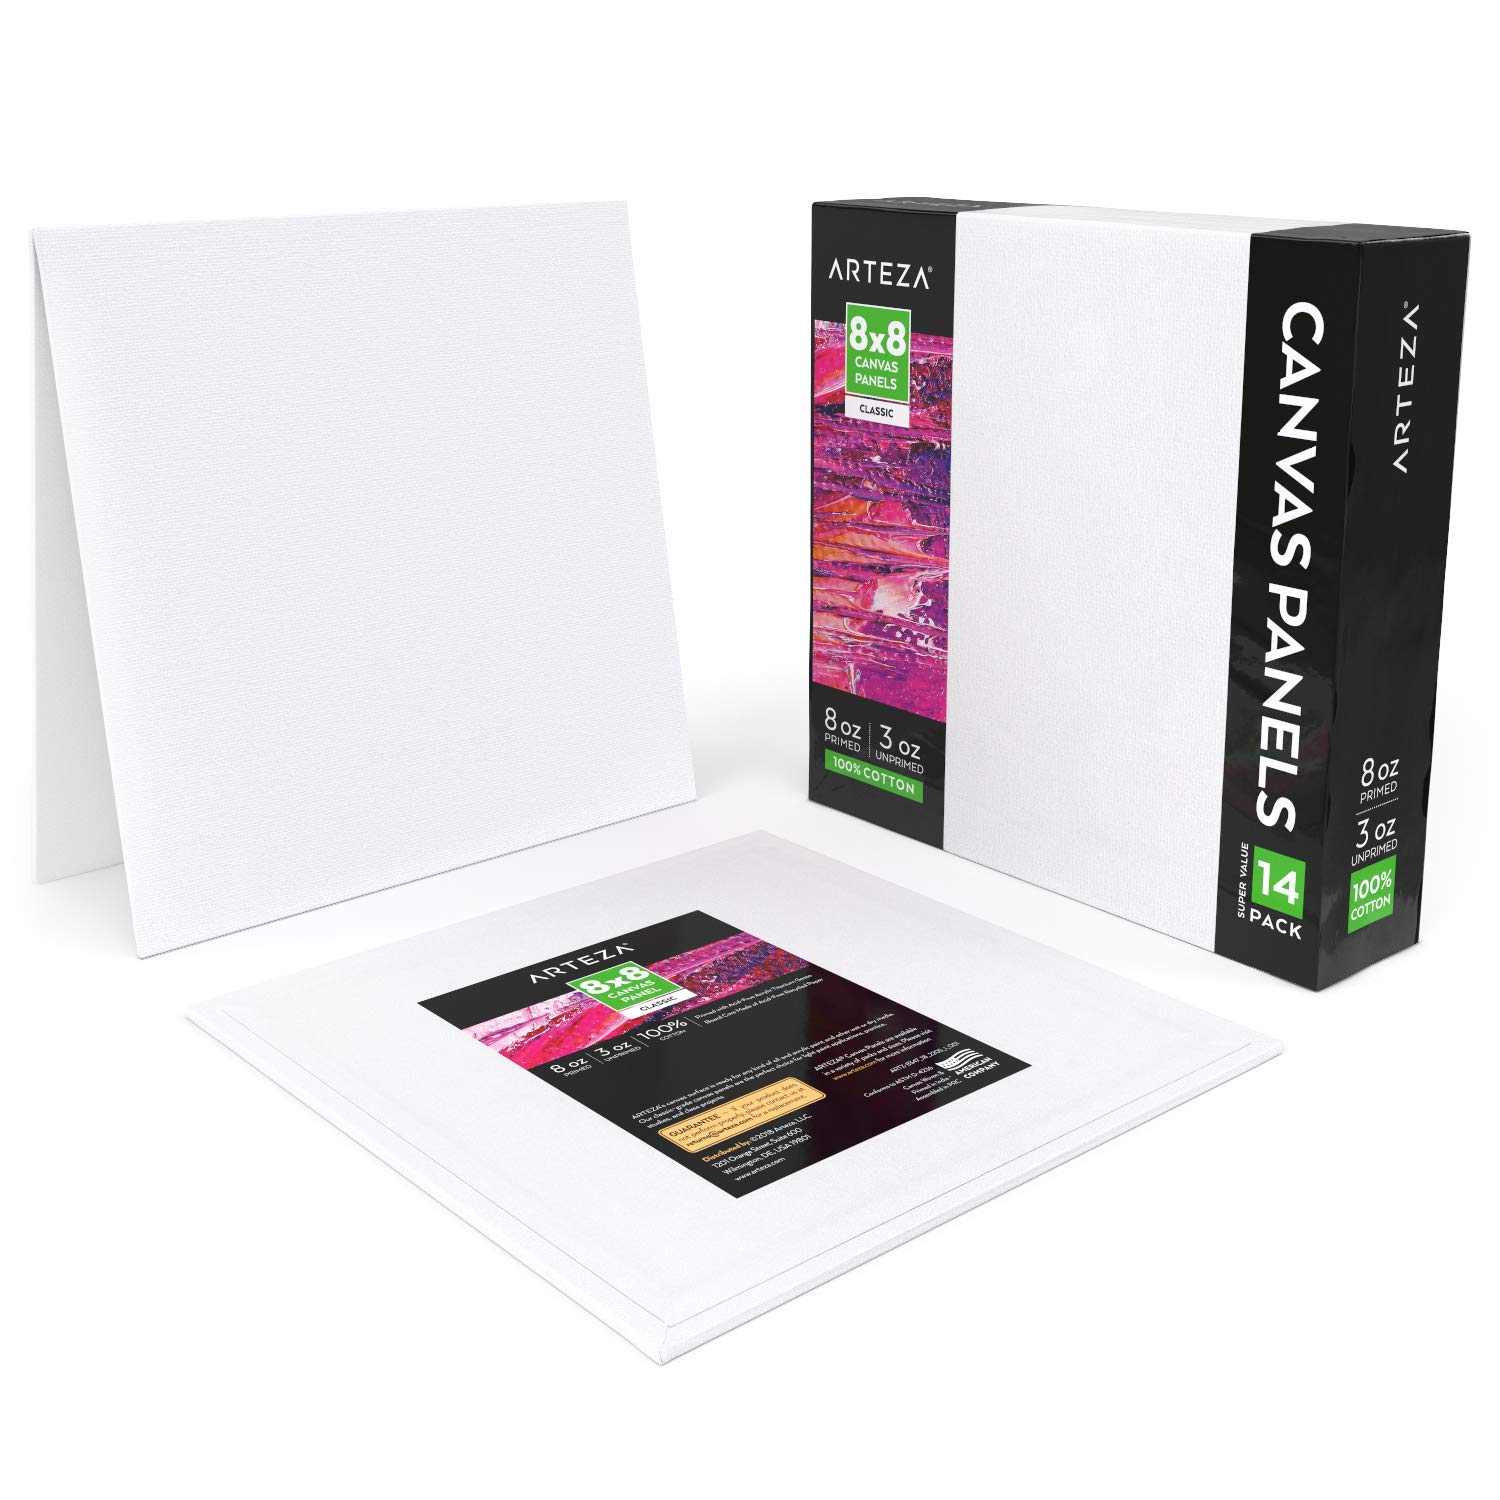 Arteza Painting Canvas Panels, 8x8, Pack of 14, Primed White, 100% Cotton with Recycled Board Core, for Acrylic, Oil, Other Wet Or Dry Art Media, for Artists, Hobby Painters, Kids